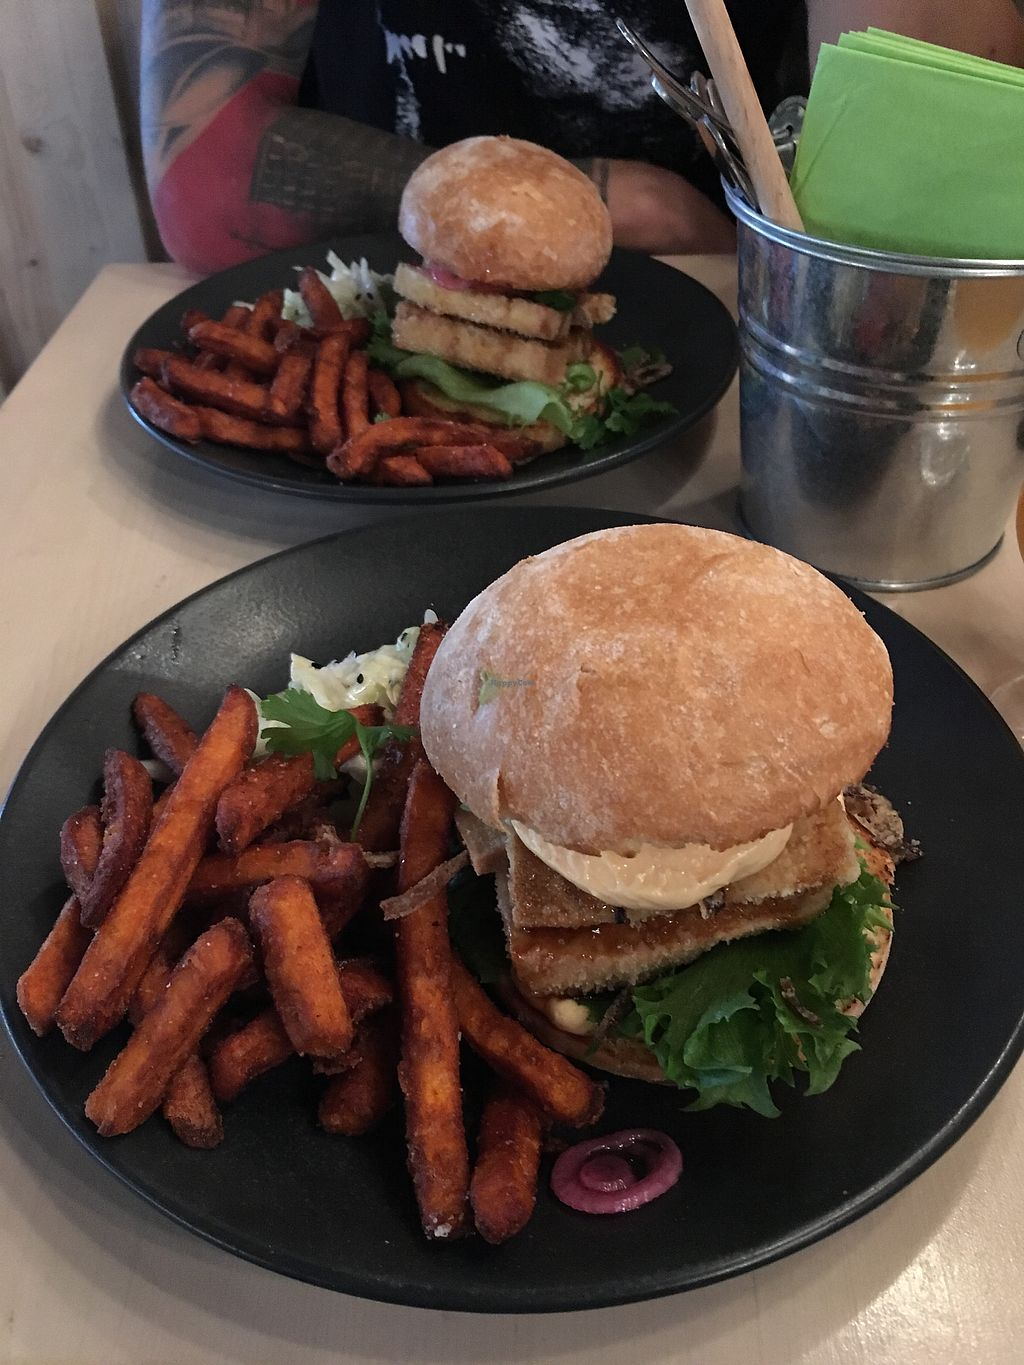 """Photo of Gastropub Betony  by <a href=""""/members/profile/dicesskull"""">dicesskull</a> <br/>Teriyaki Tofu Burger with Sweet Potato Fries <br/> September 9, 2017  - <a href='/contact/abuse/image/94331/302428'>Report</a>"""